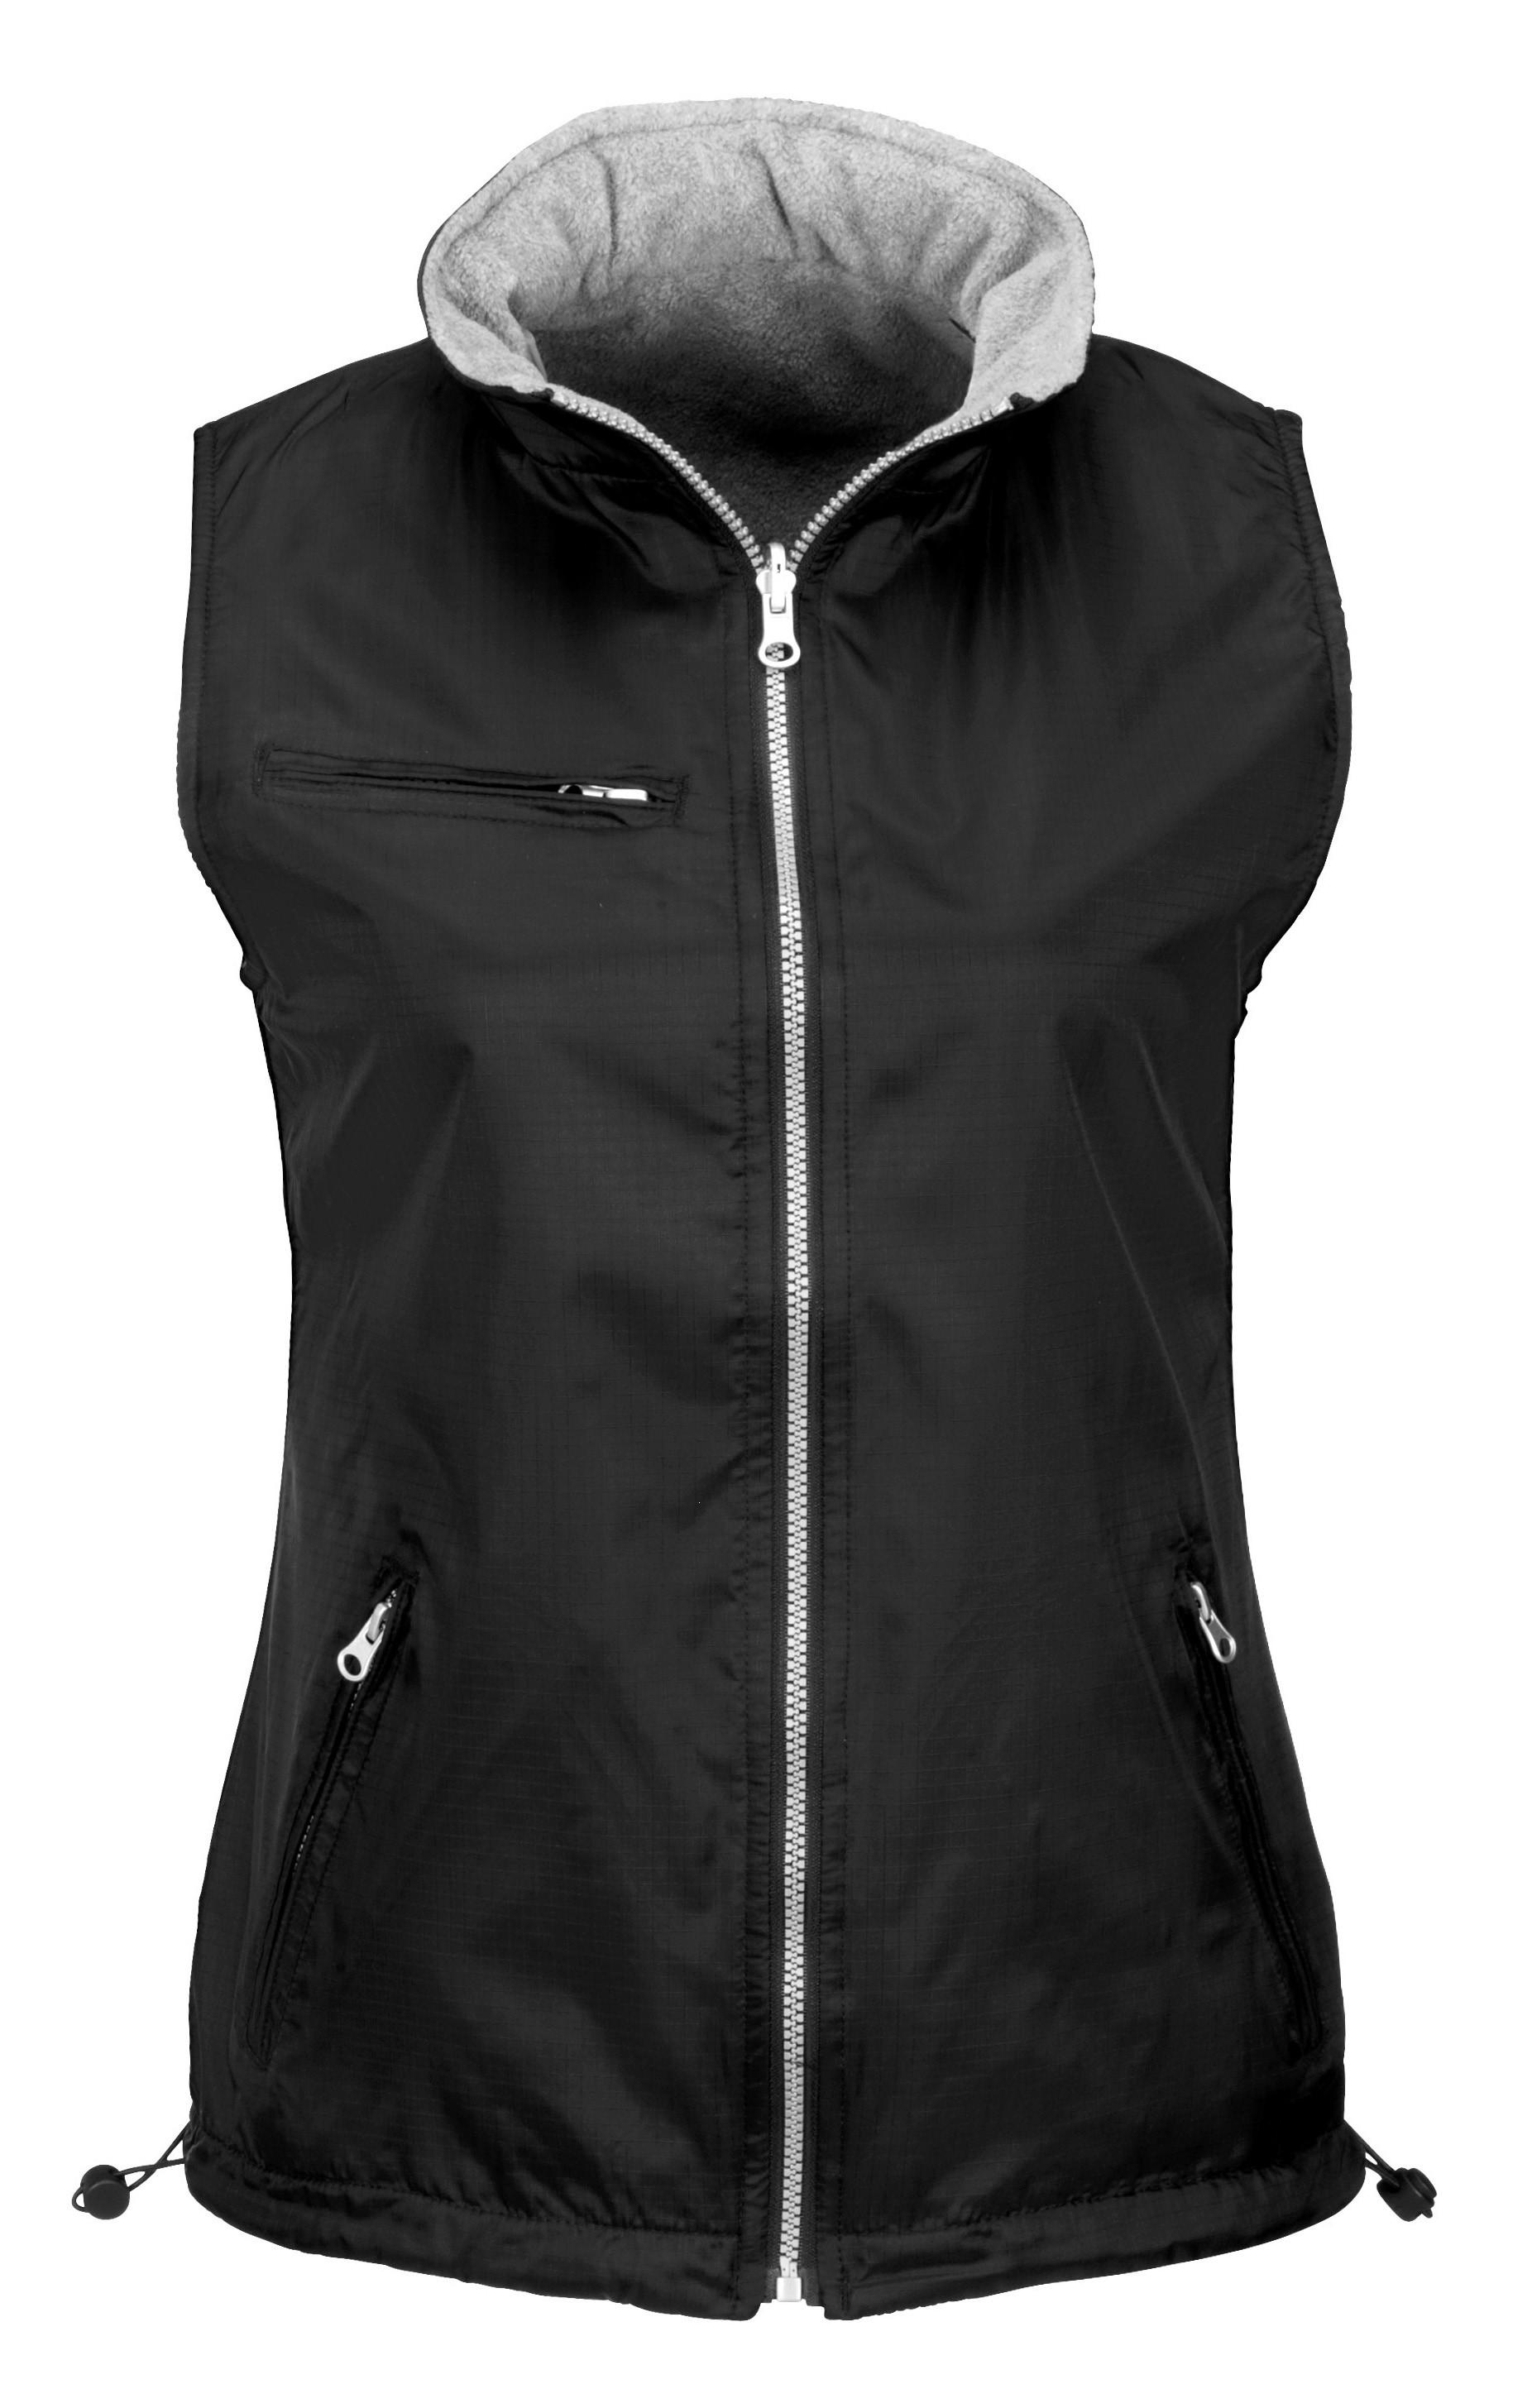 Ladies Reversible Fusion Bodywarmer - Black Only